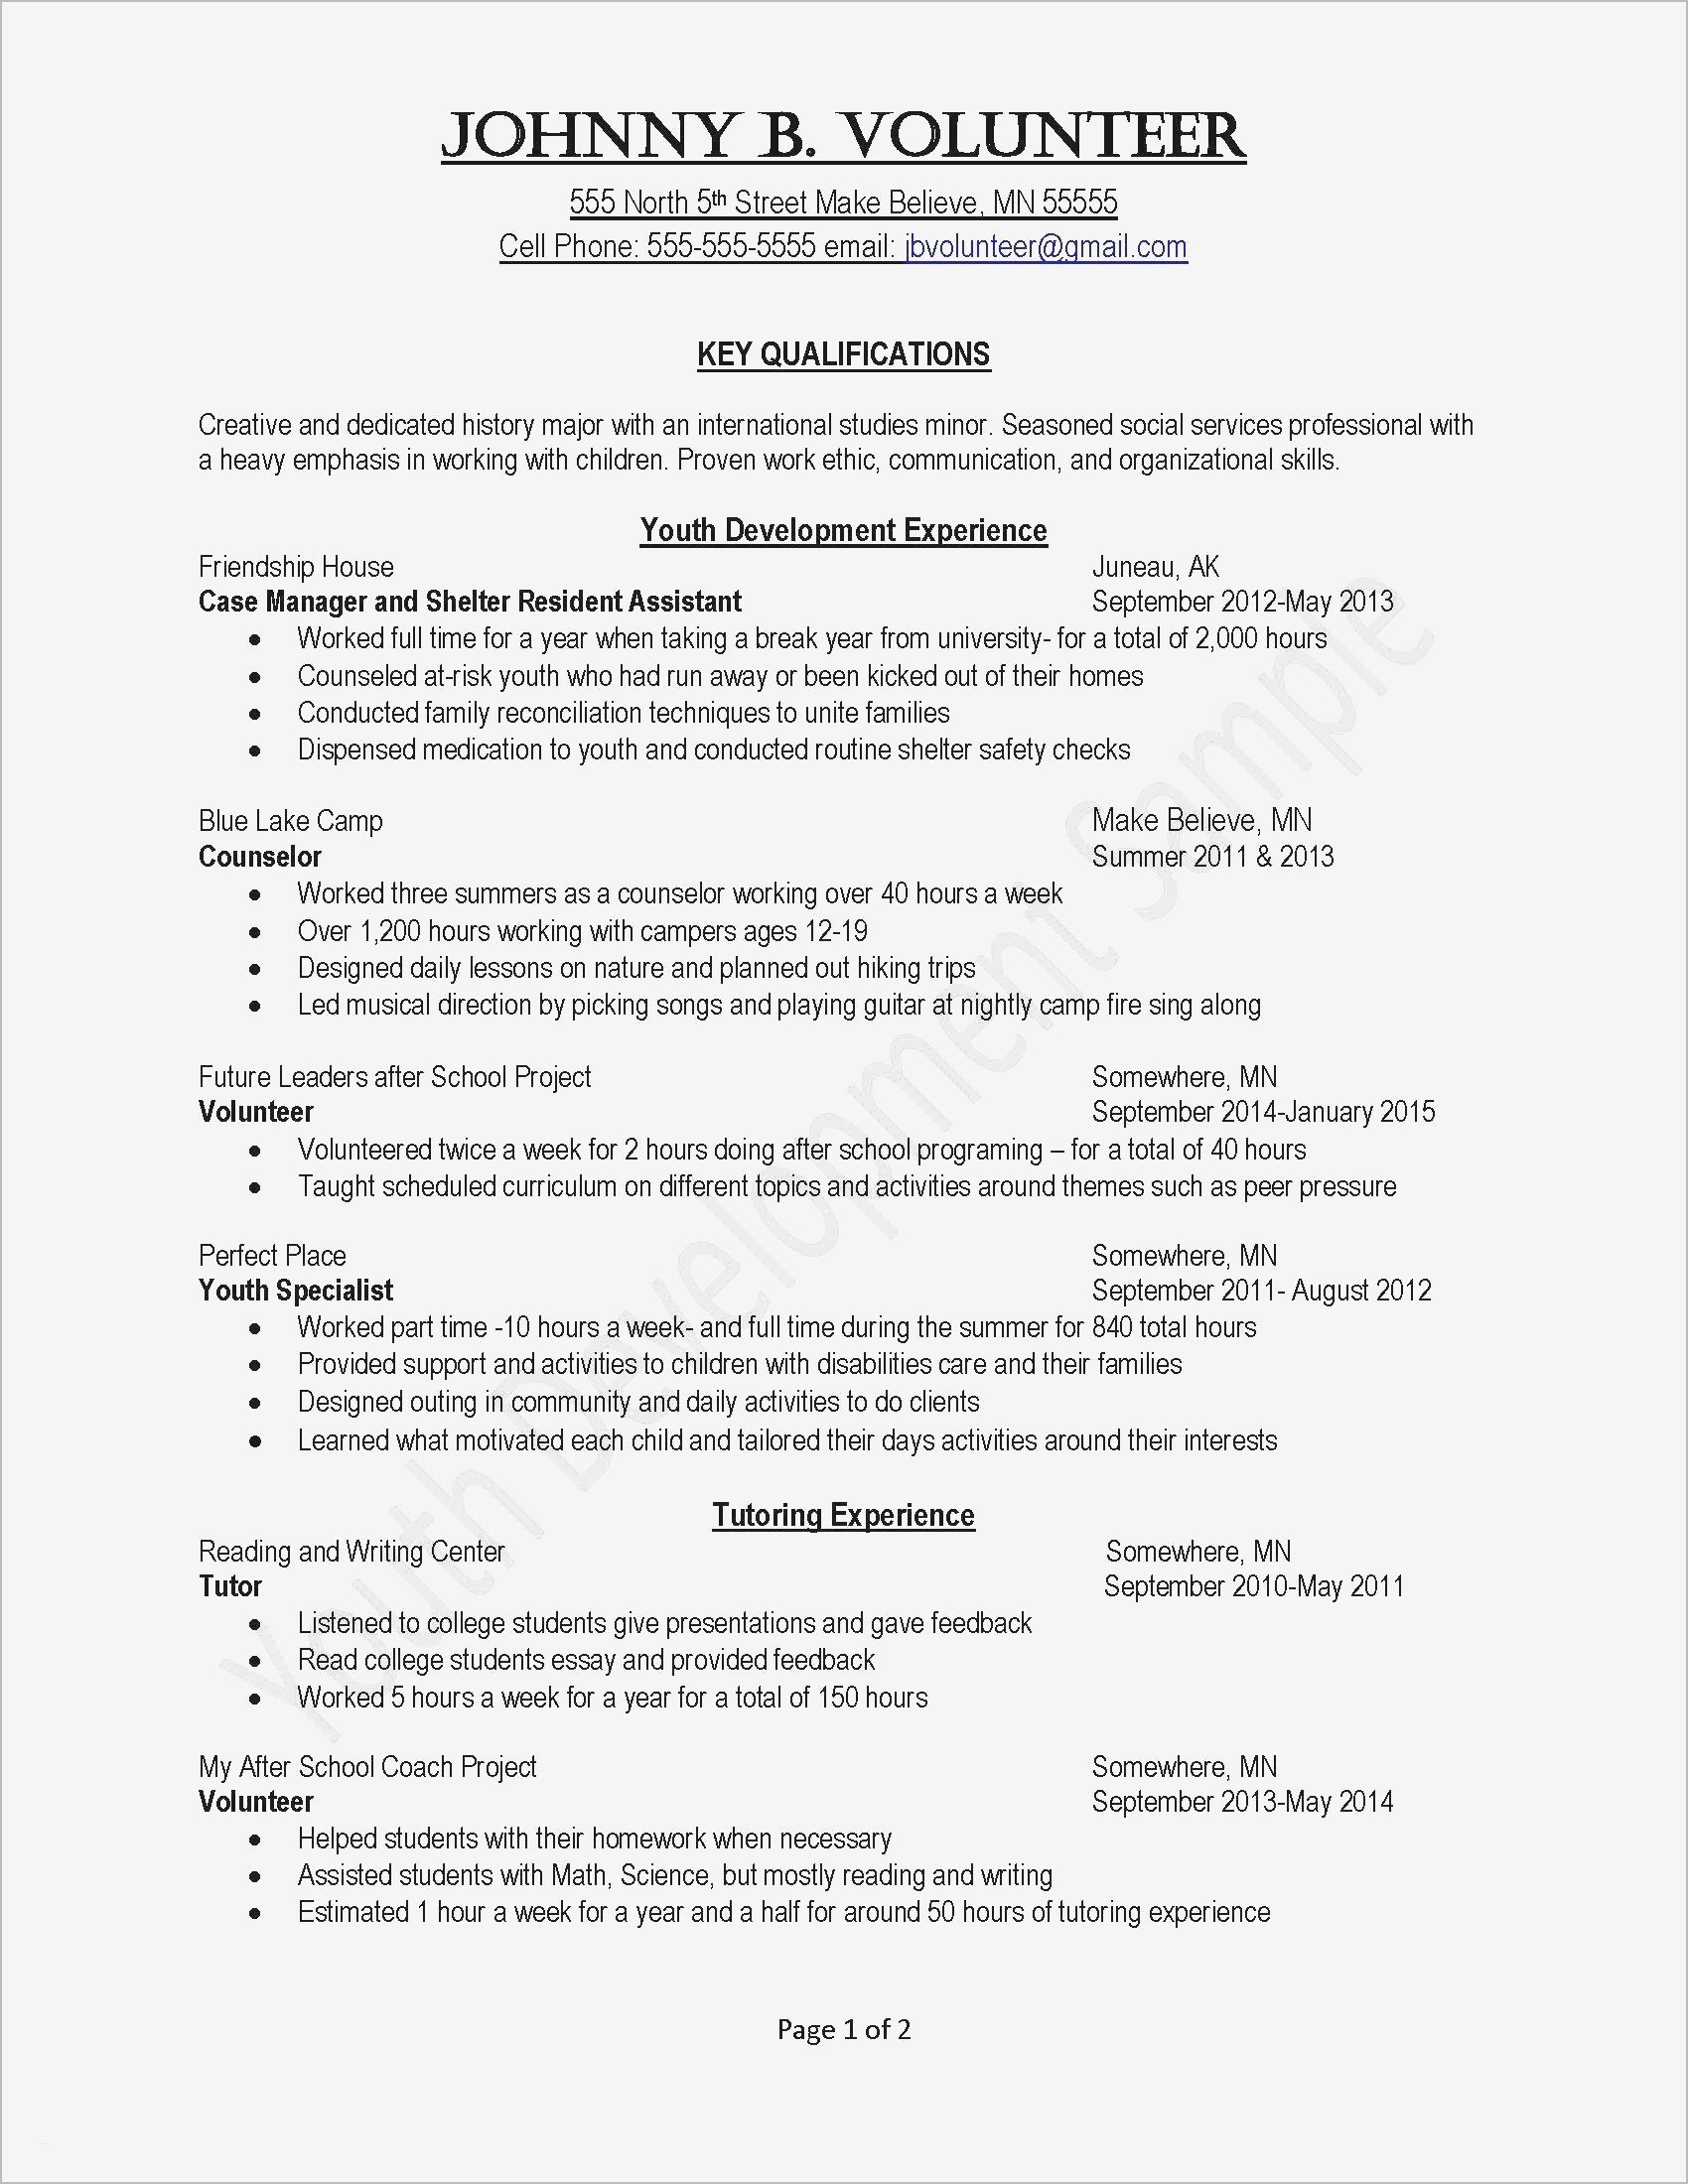 Free Online Cover Letter Template - Resume Template Line Free Fresh Job Fer Letter Template Us Copy Od